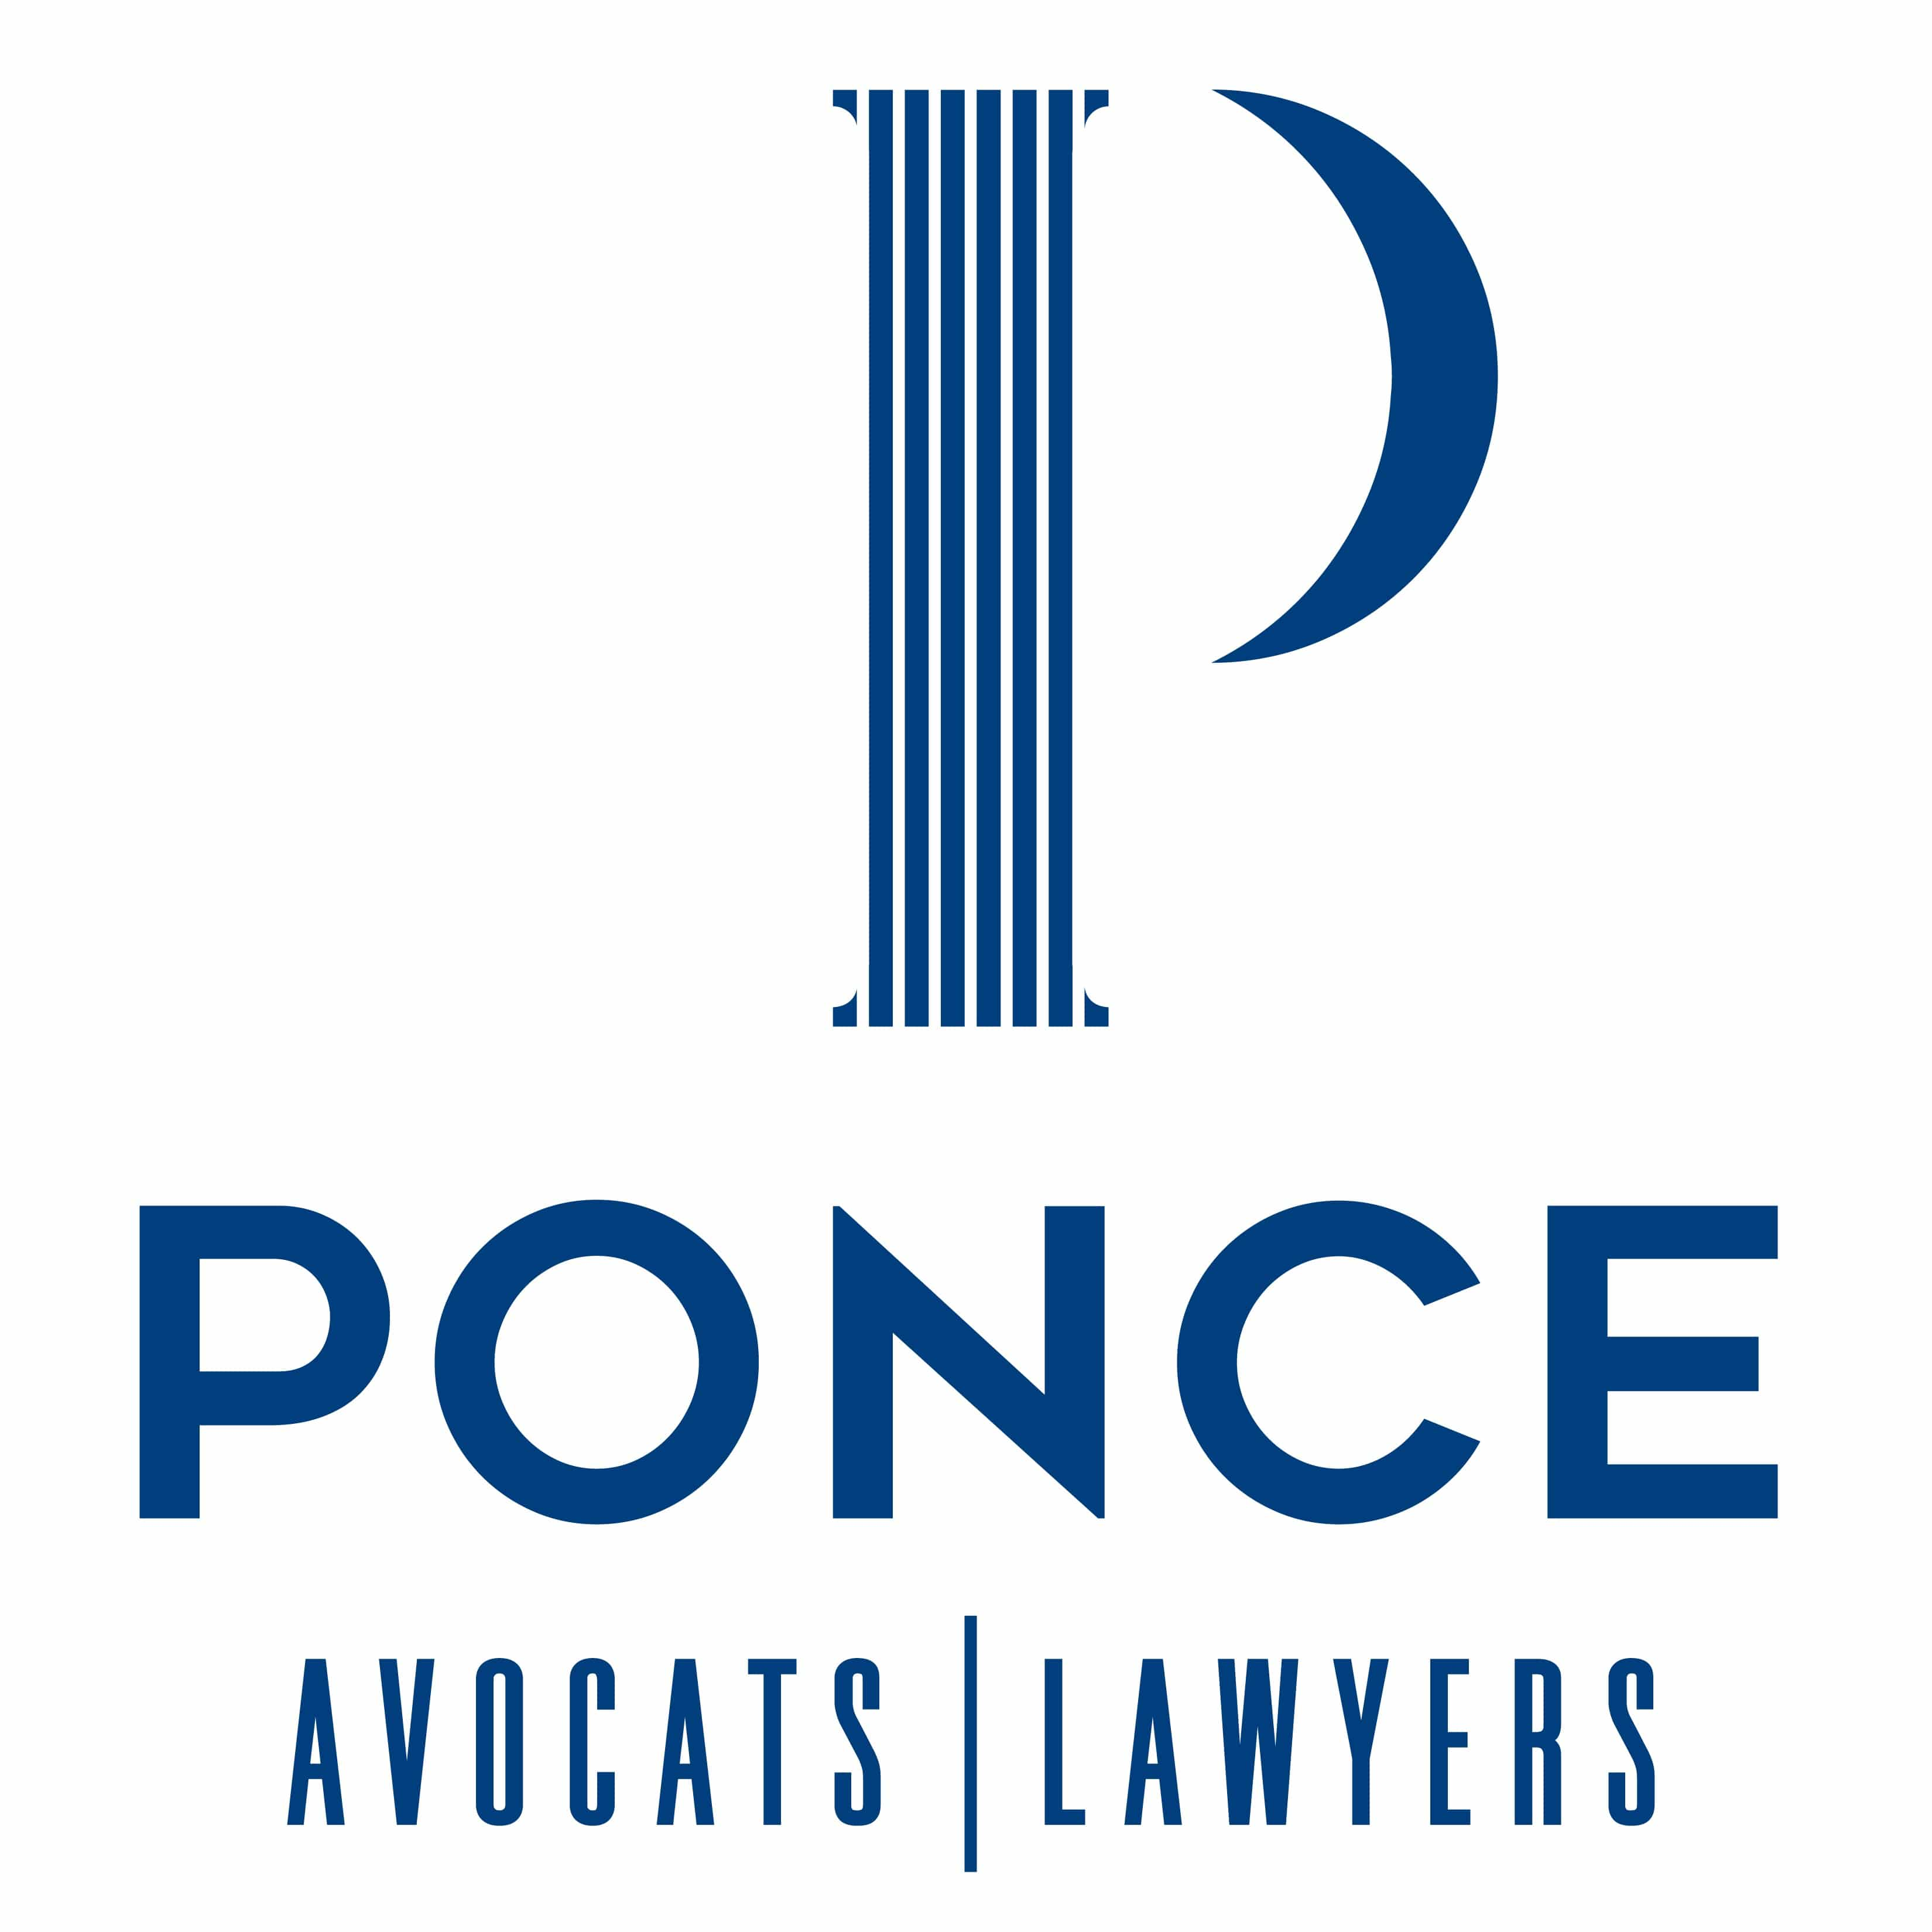 Ponce avocats